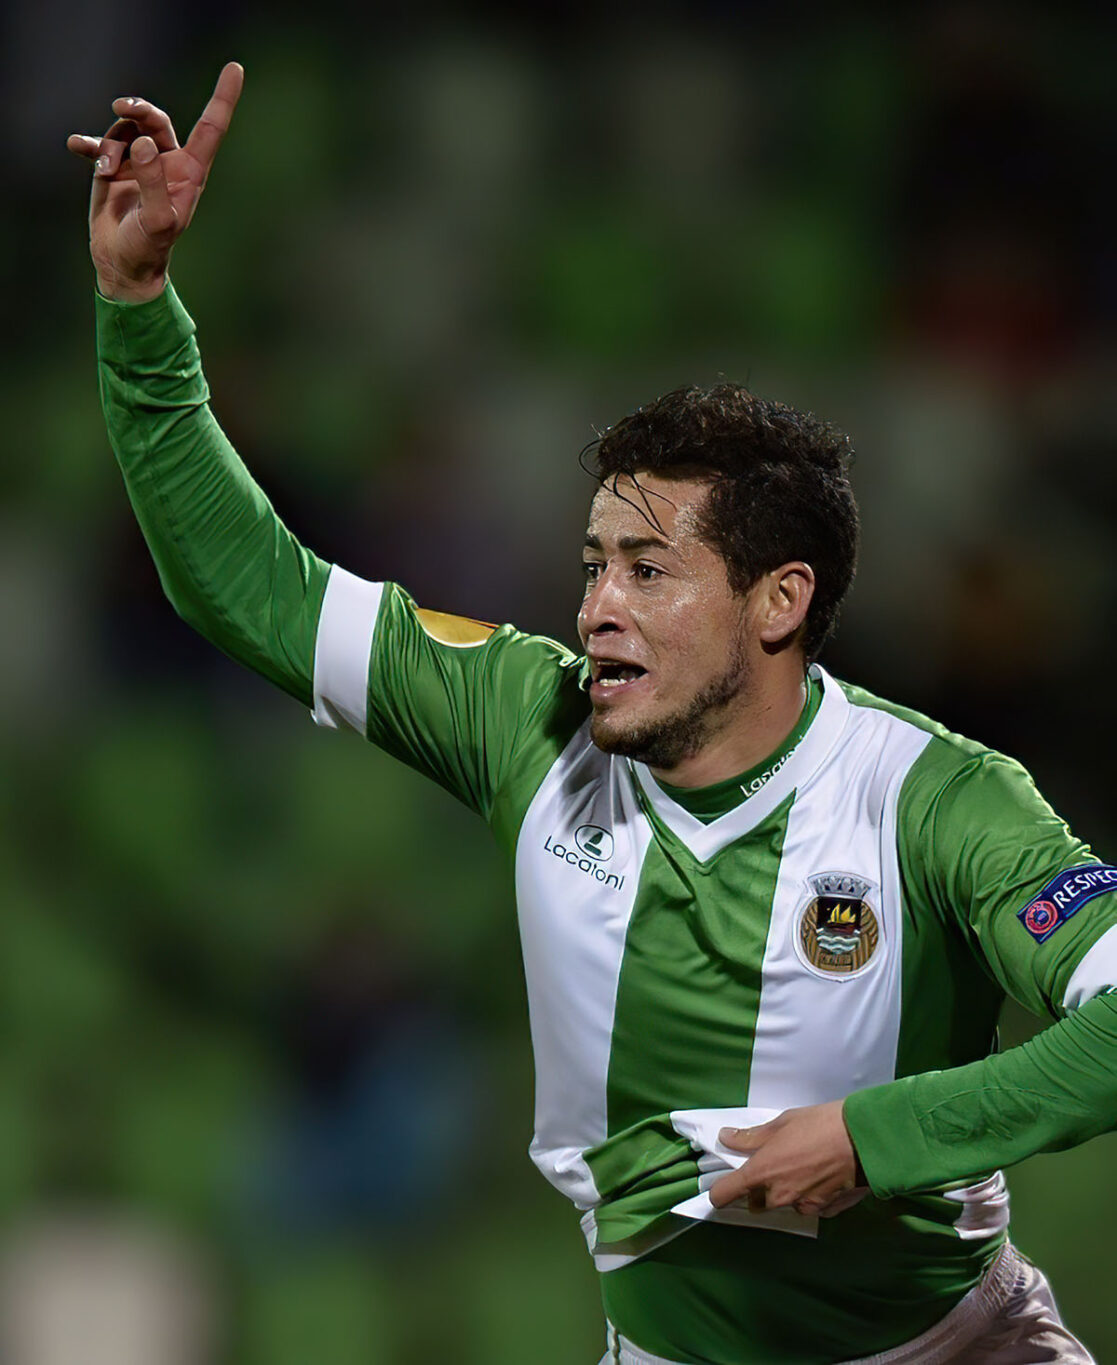 Rio Ave's Brazilian midfielder Diego Lopes celebrates after scoring during the UEFA Europa League football match Rio Ave FC vs FC Steaua Bucharest at the Arcos stadium in Vila do Conde on November 6, 2014.